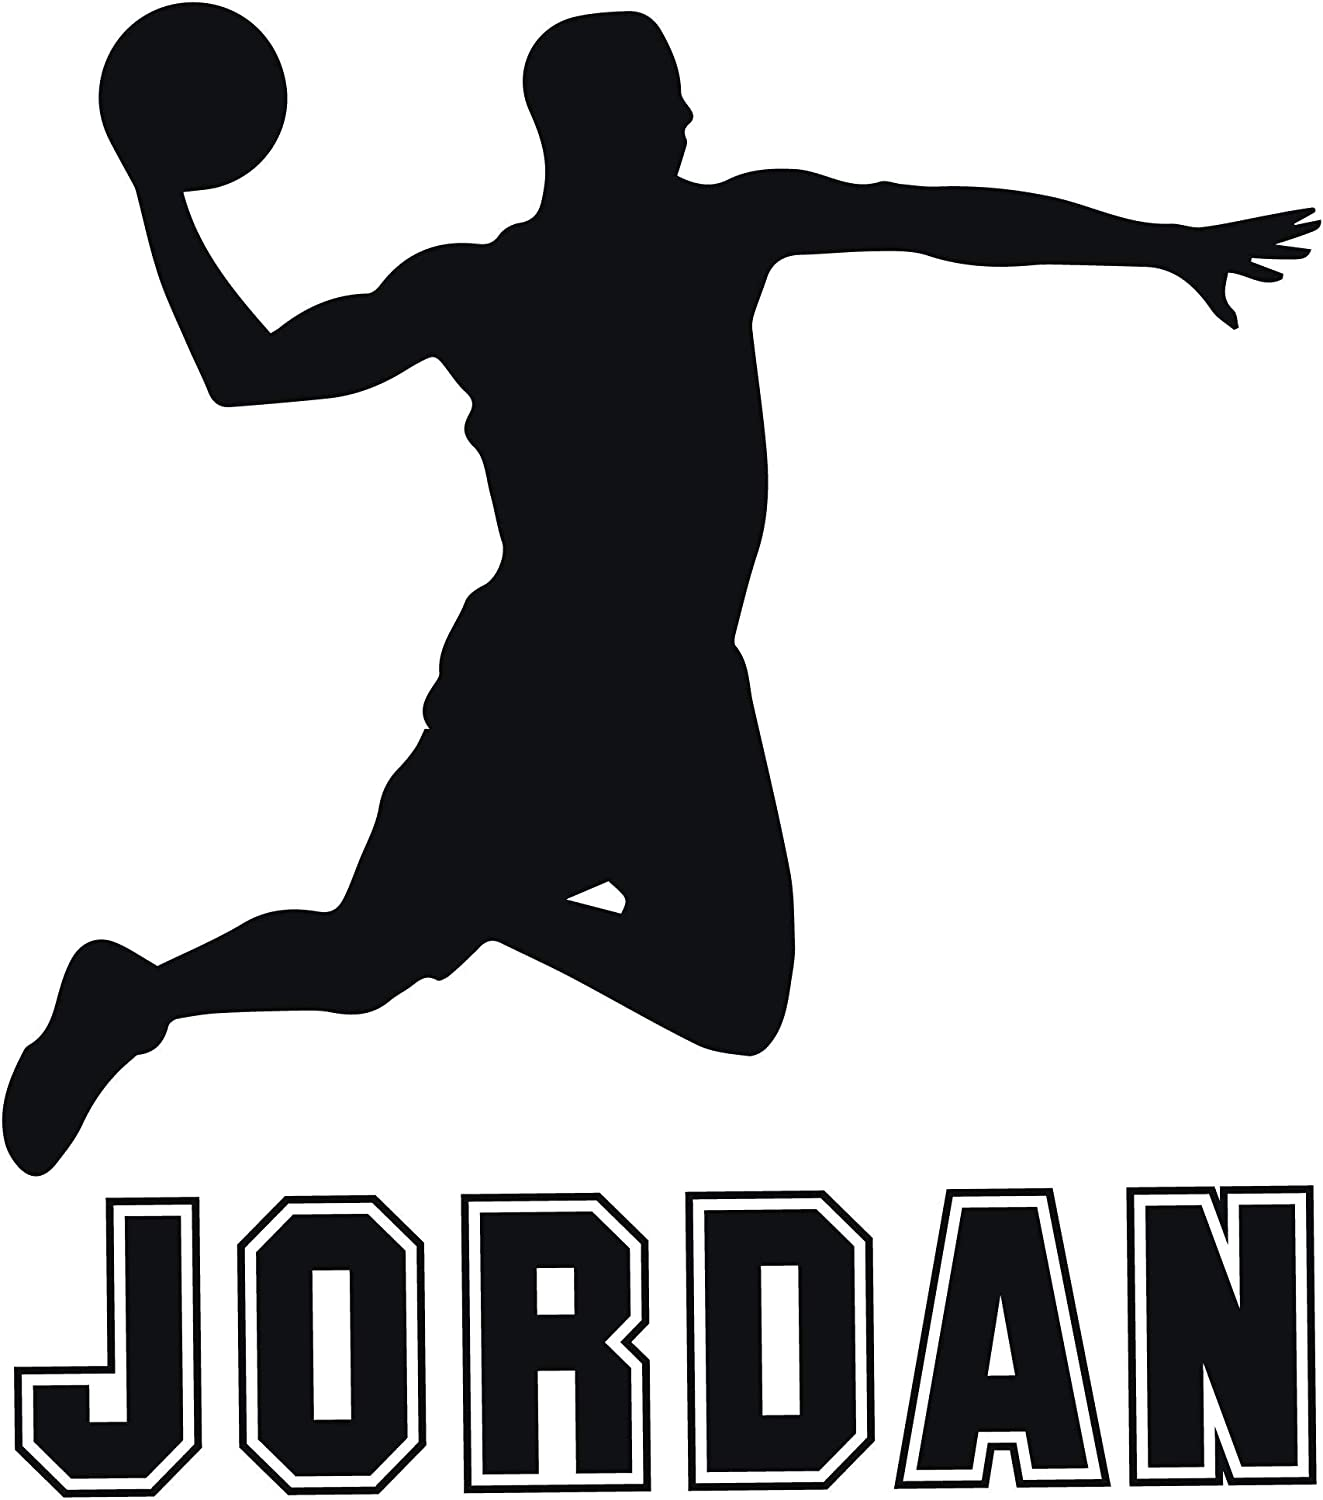 Room Wall Decor - Basketball Player with Personalized Name Vinyl Decal Stickers for Boys Bedroom, Playroom, Locker Room, or Man Cave - Custom Sizes and Colors Match The Theme of Any Living Space